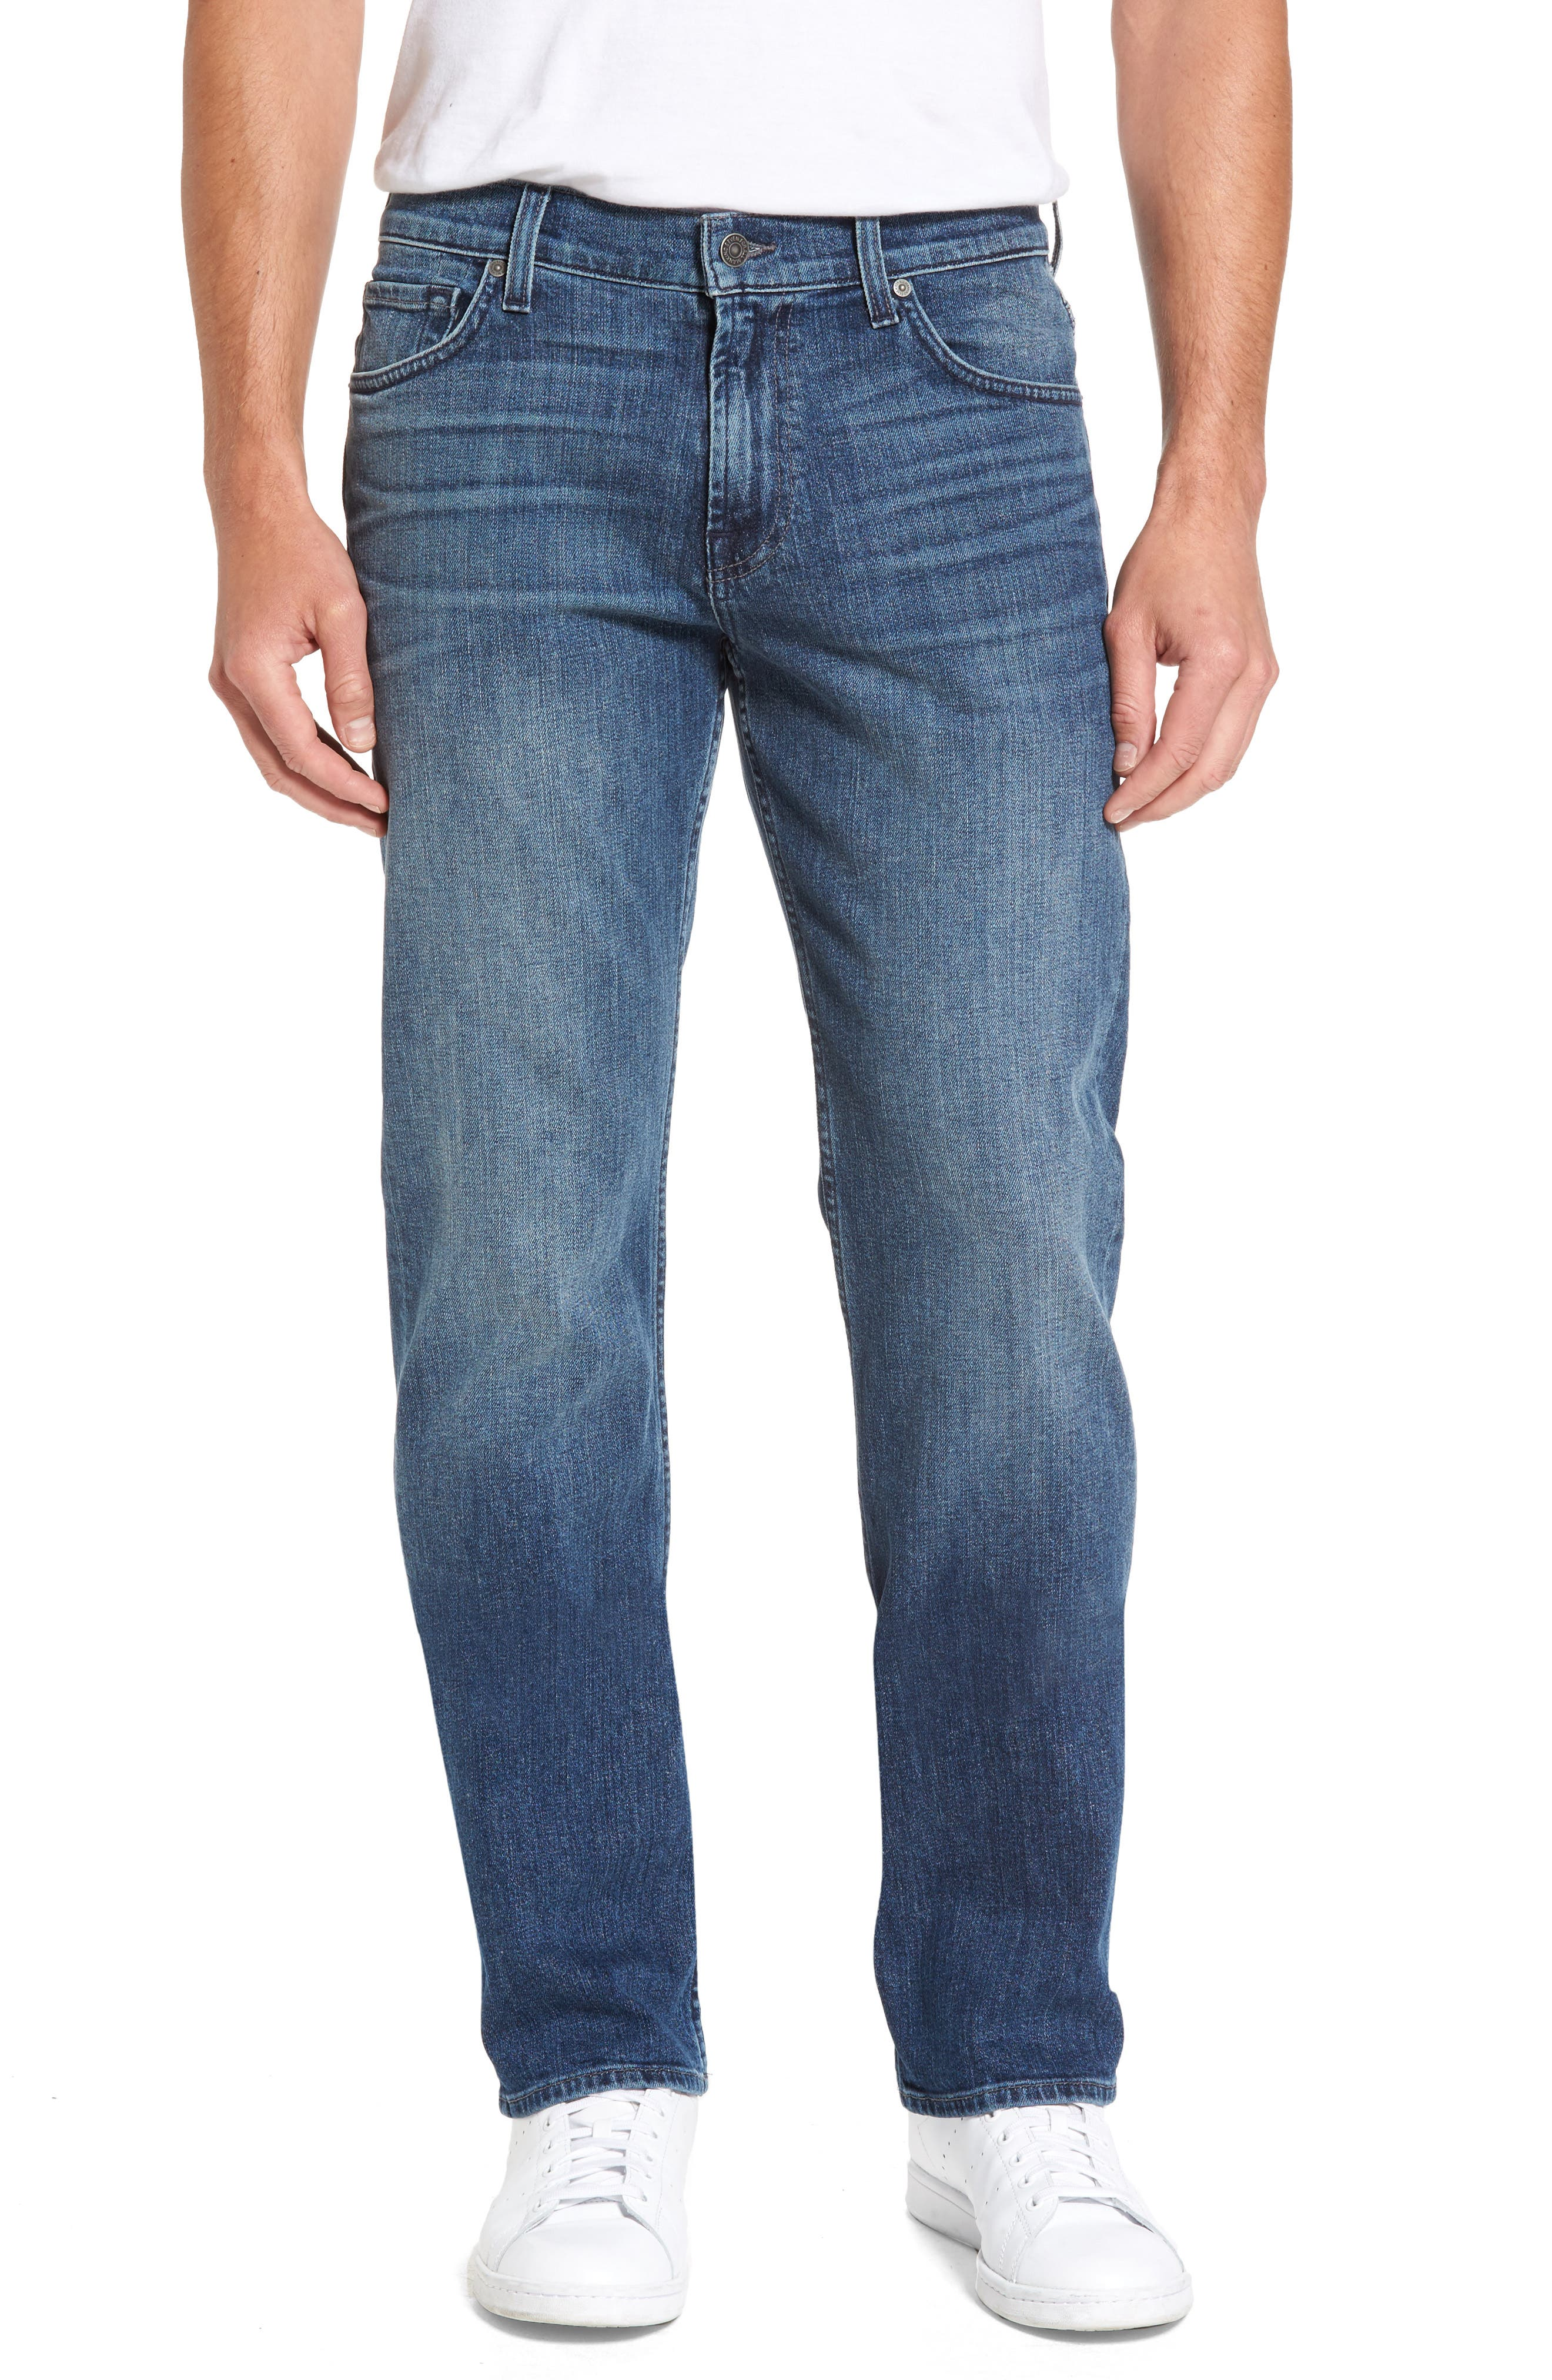 Austyn Relaxed Fit Jeans,                         Main,                         color, Townsend